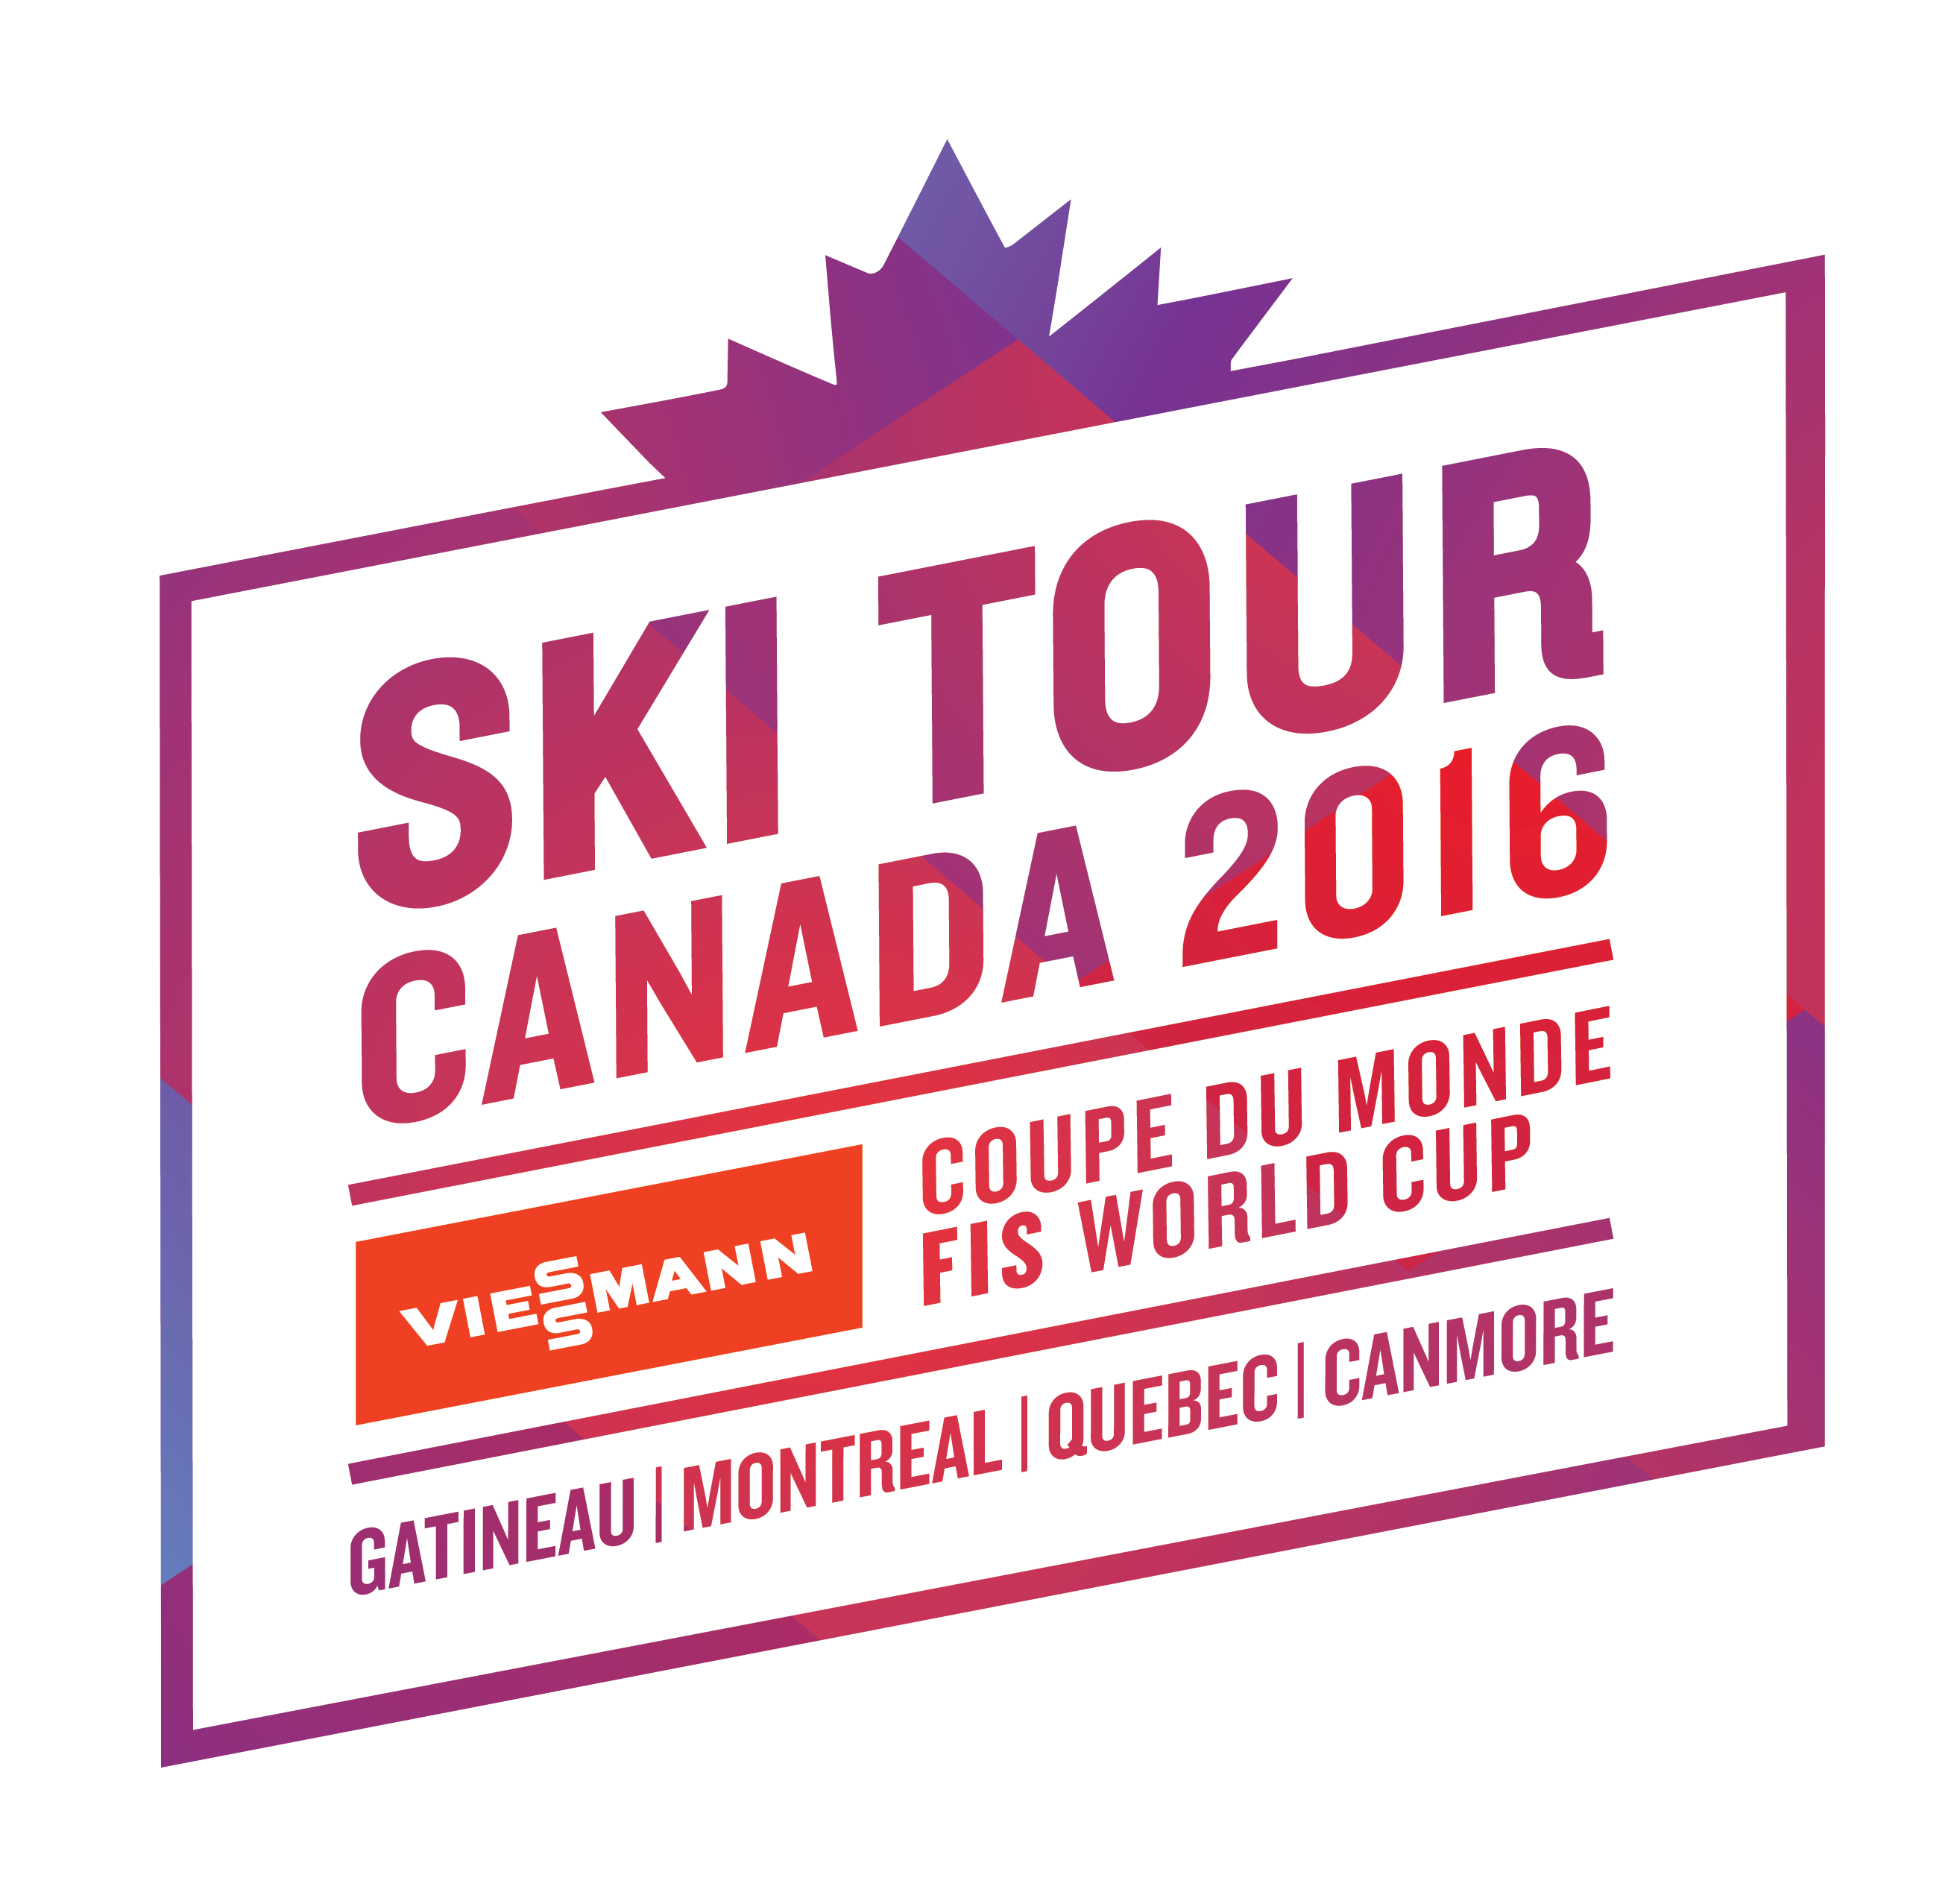 AWCA, CRTG team up as official forerunners for Ski Tour Canada